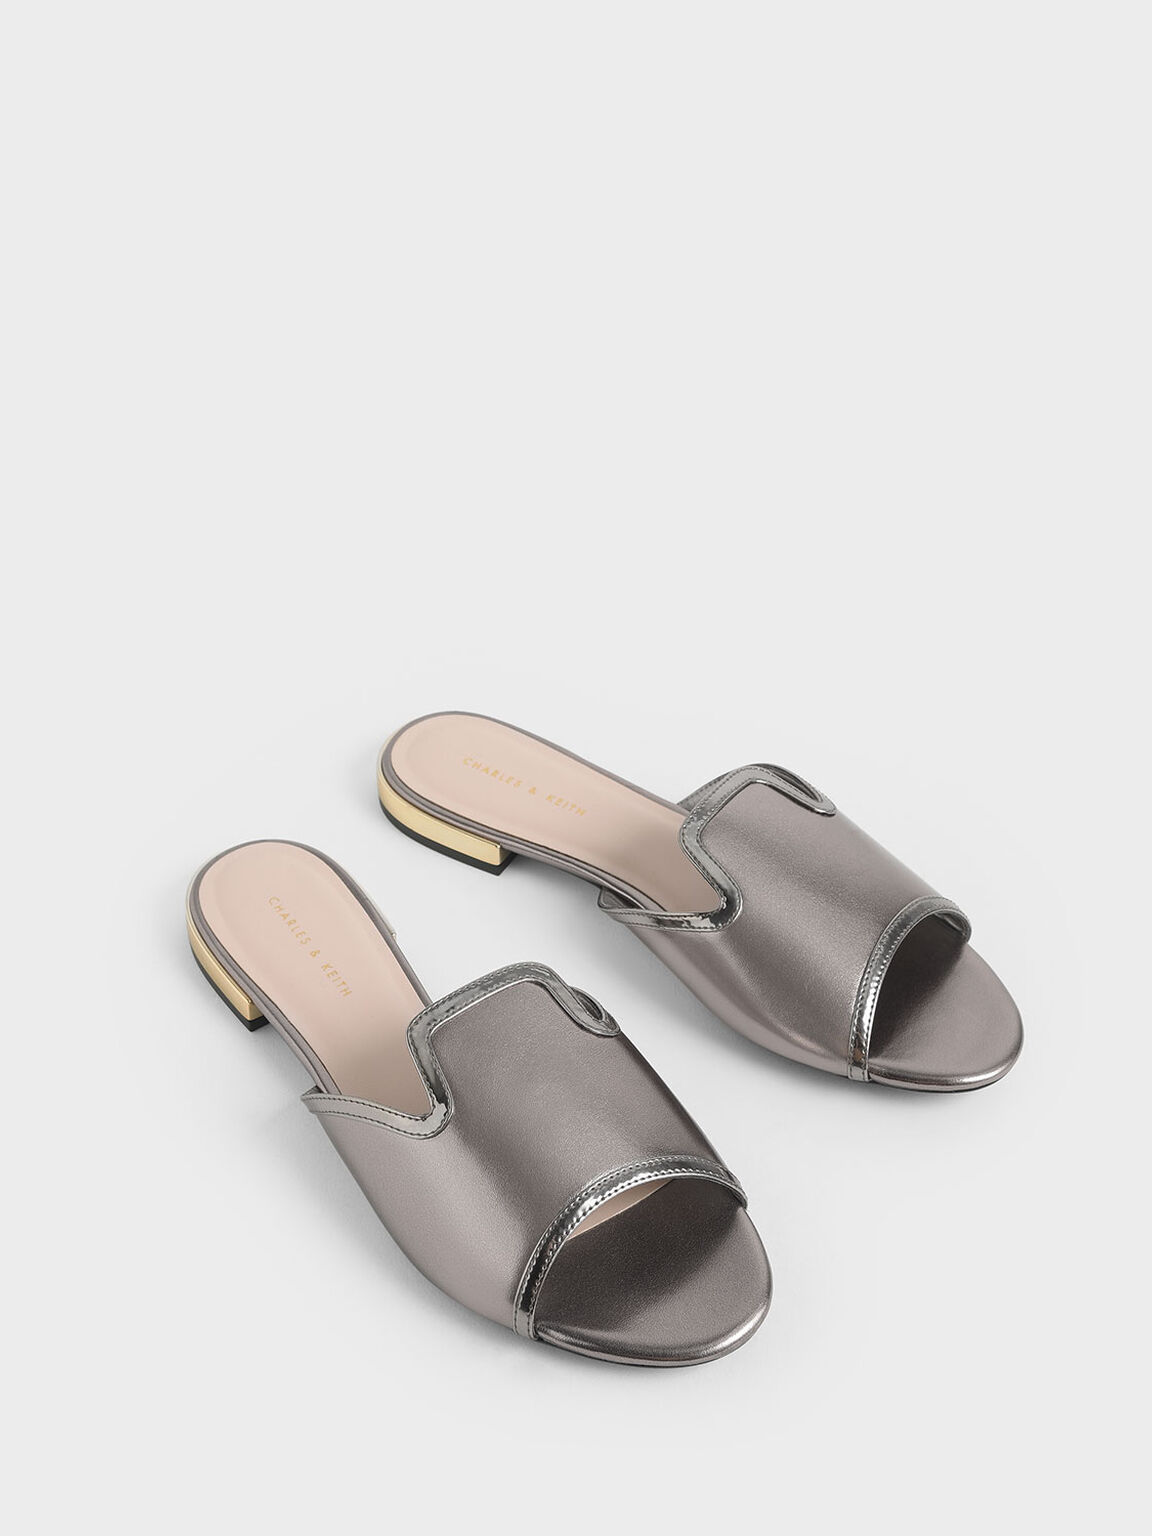 Mirror Metallic Slide Sandals, Pewter, hi-res